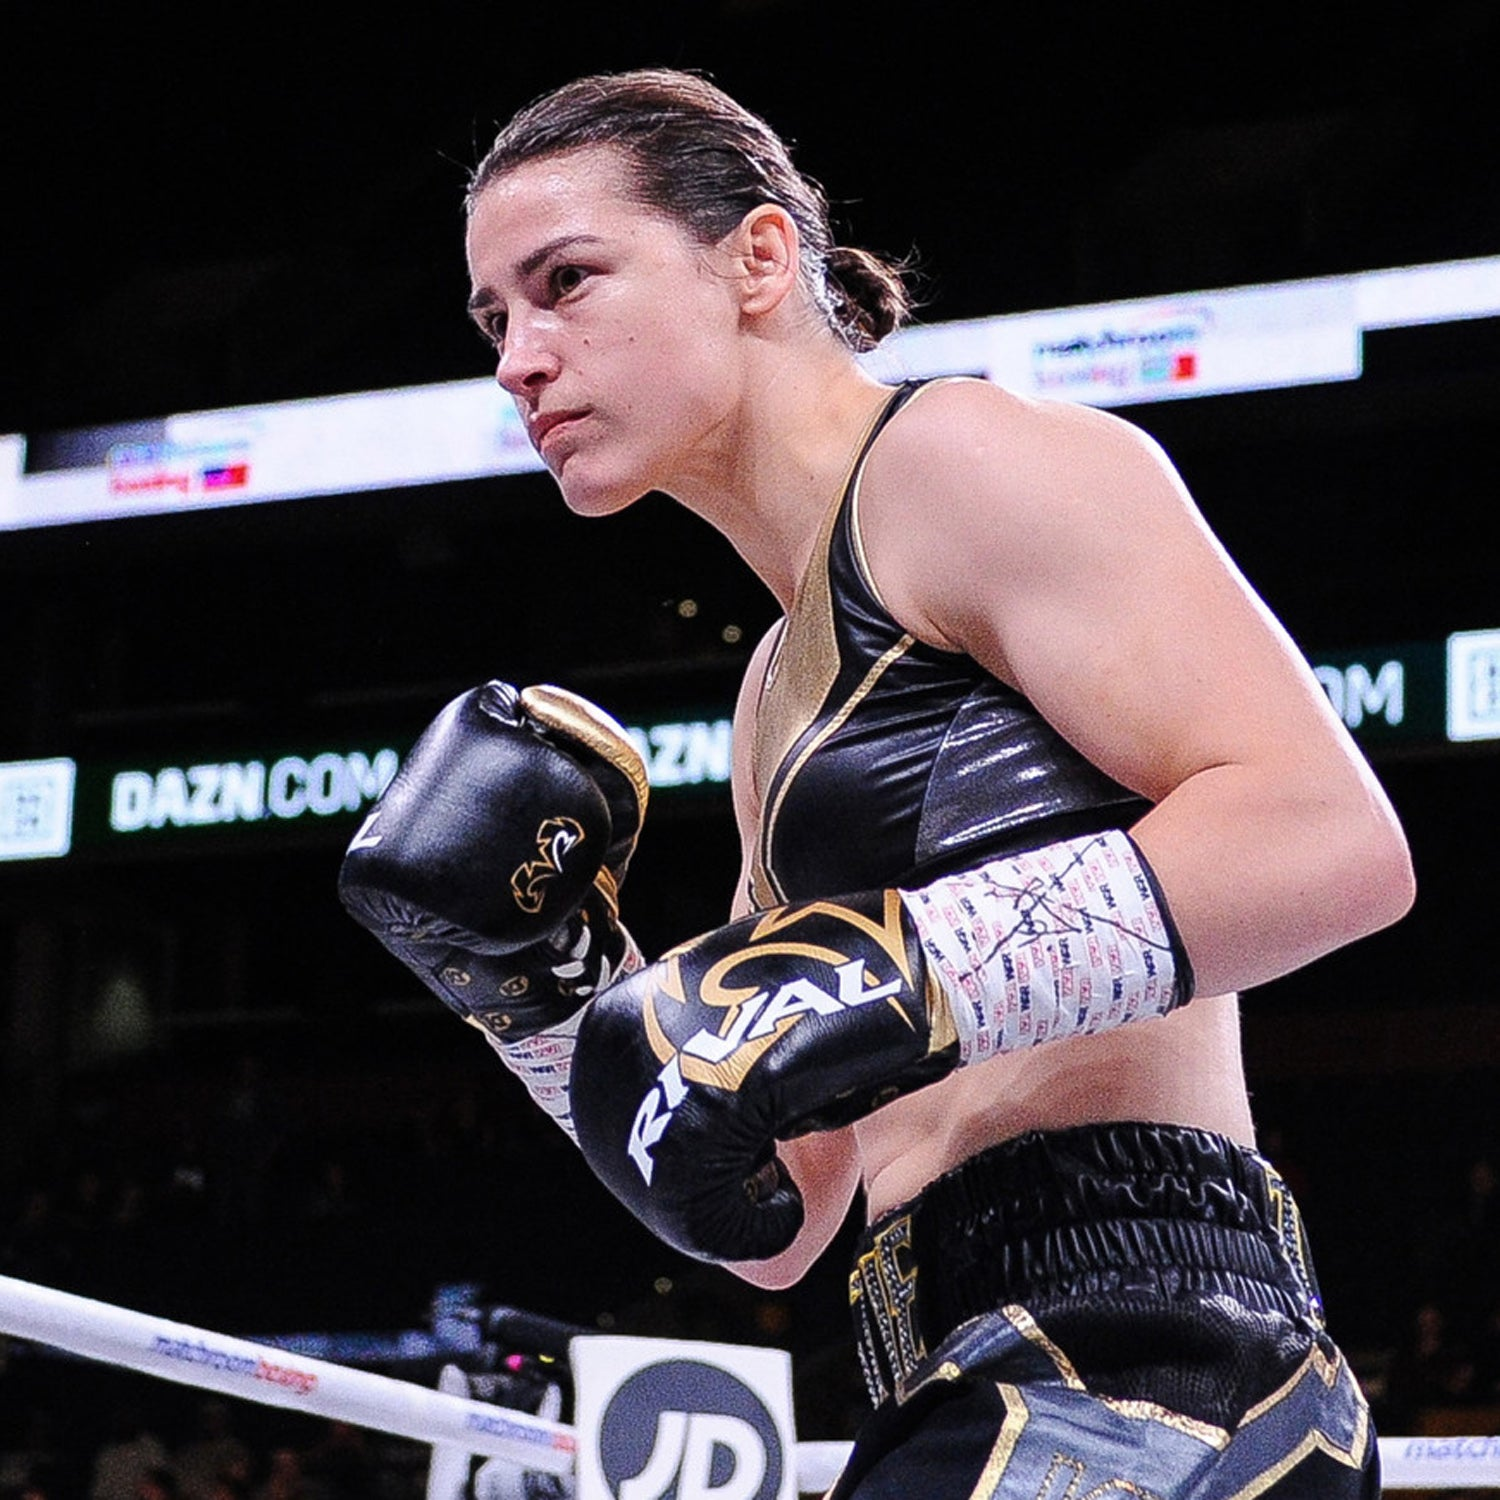 Simple & Effective: How Does Katie Taylor Train?